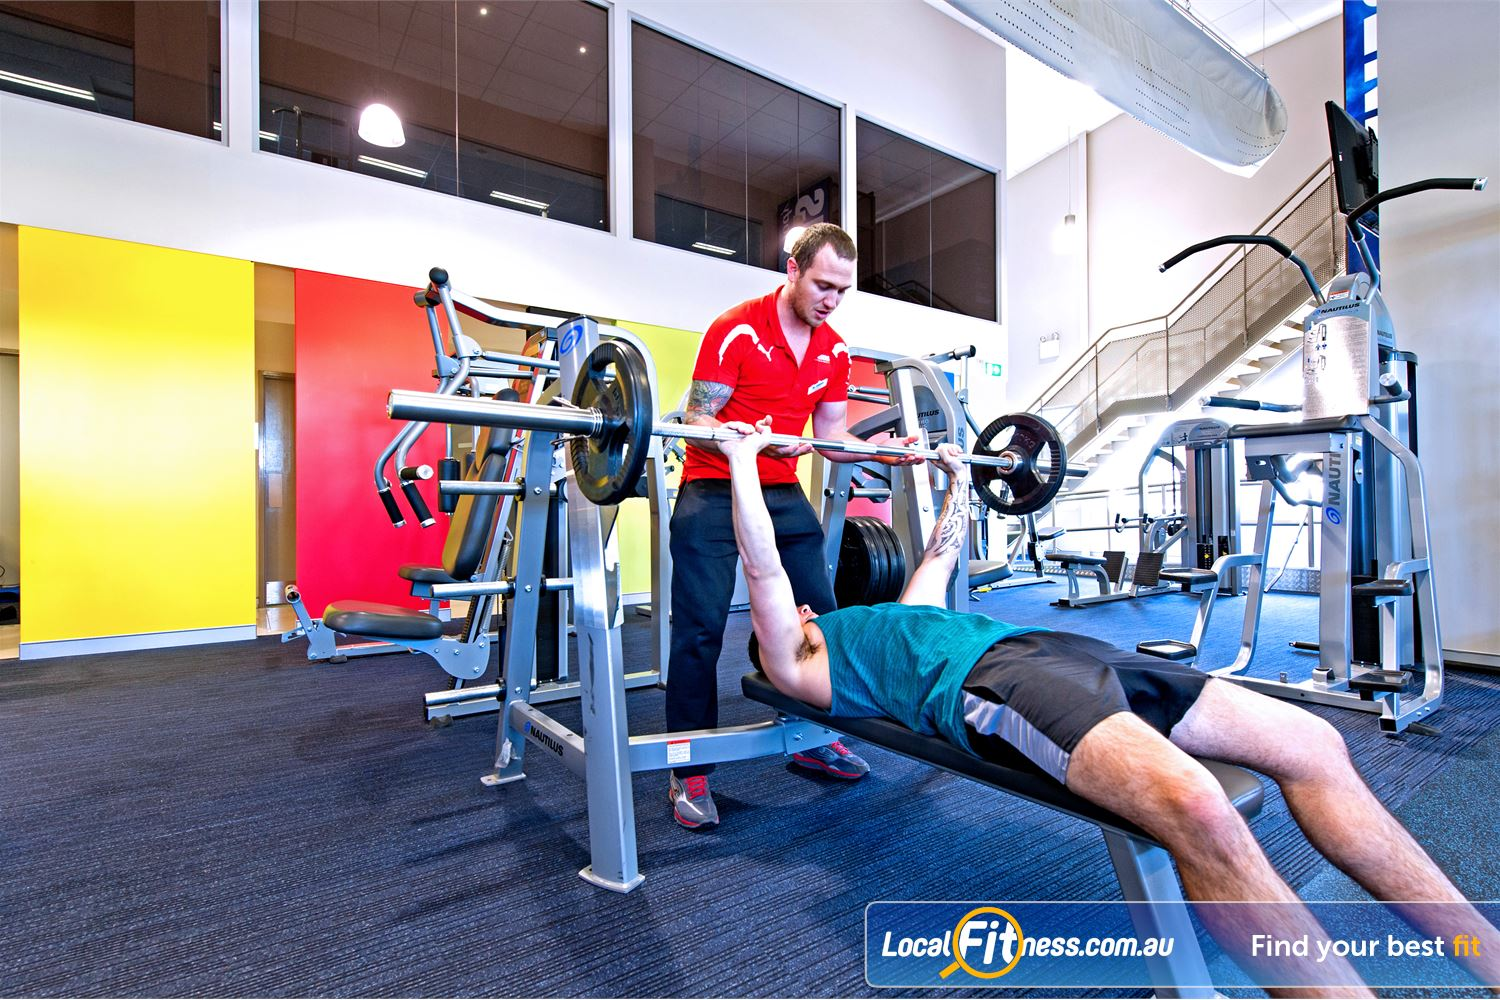 Genesis Fitness Clubs Parramatta Parramatta personal training is like having your own personal coach.